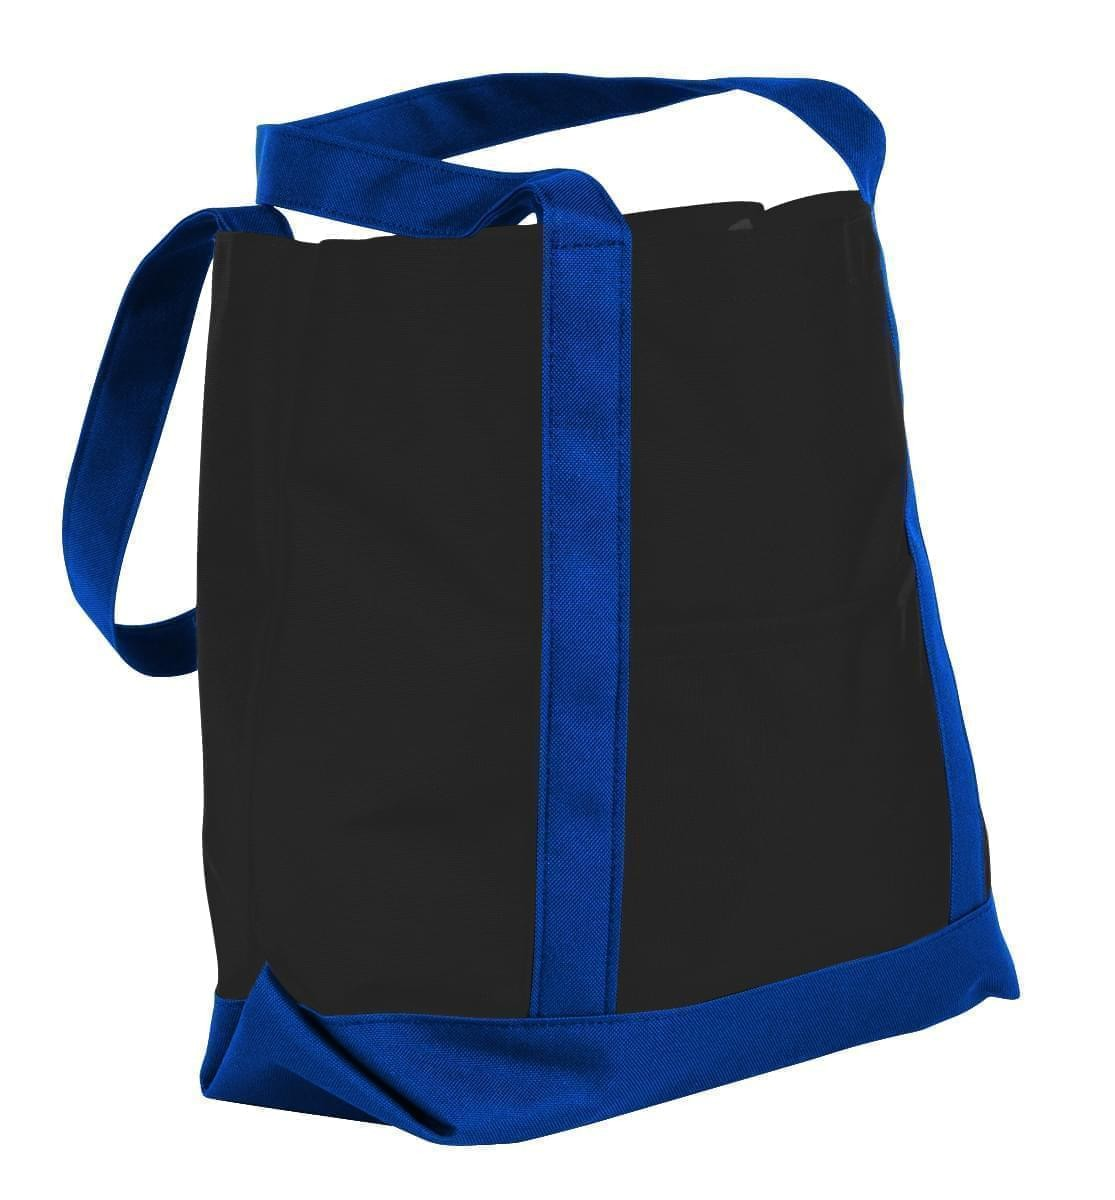 USA Made Nylon Poly Boat Tote Bags, Black-Royal Blue, XAACL1UAOM